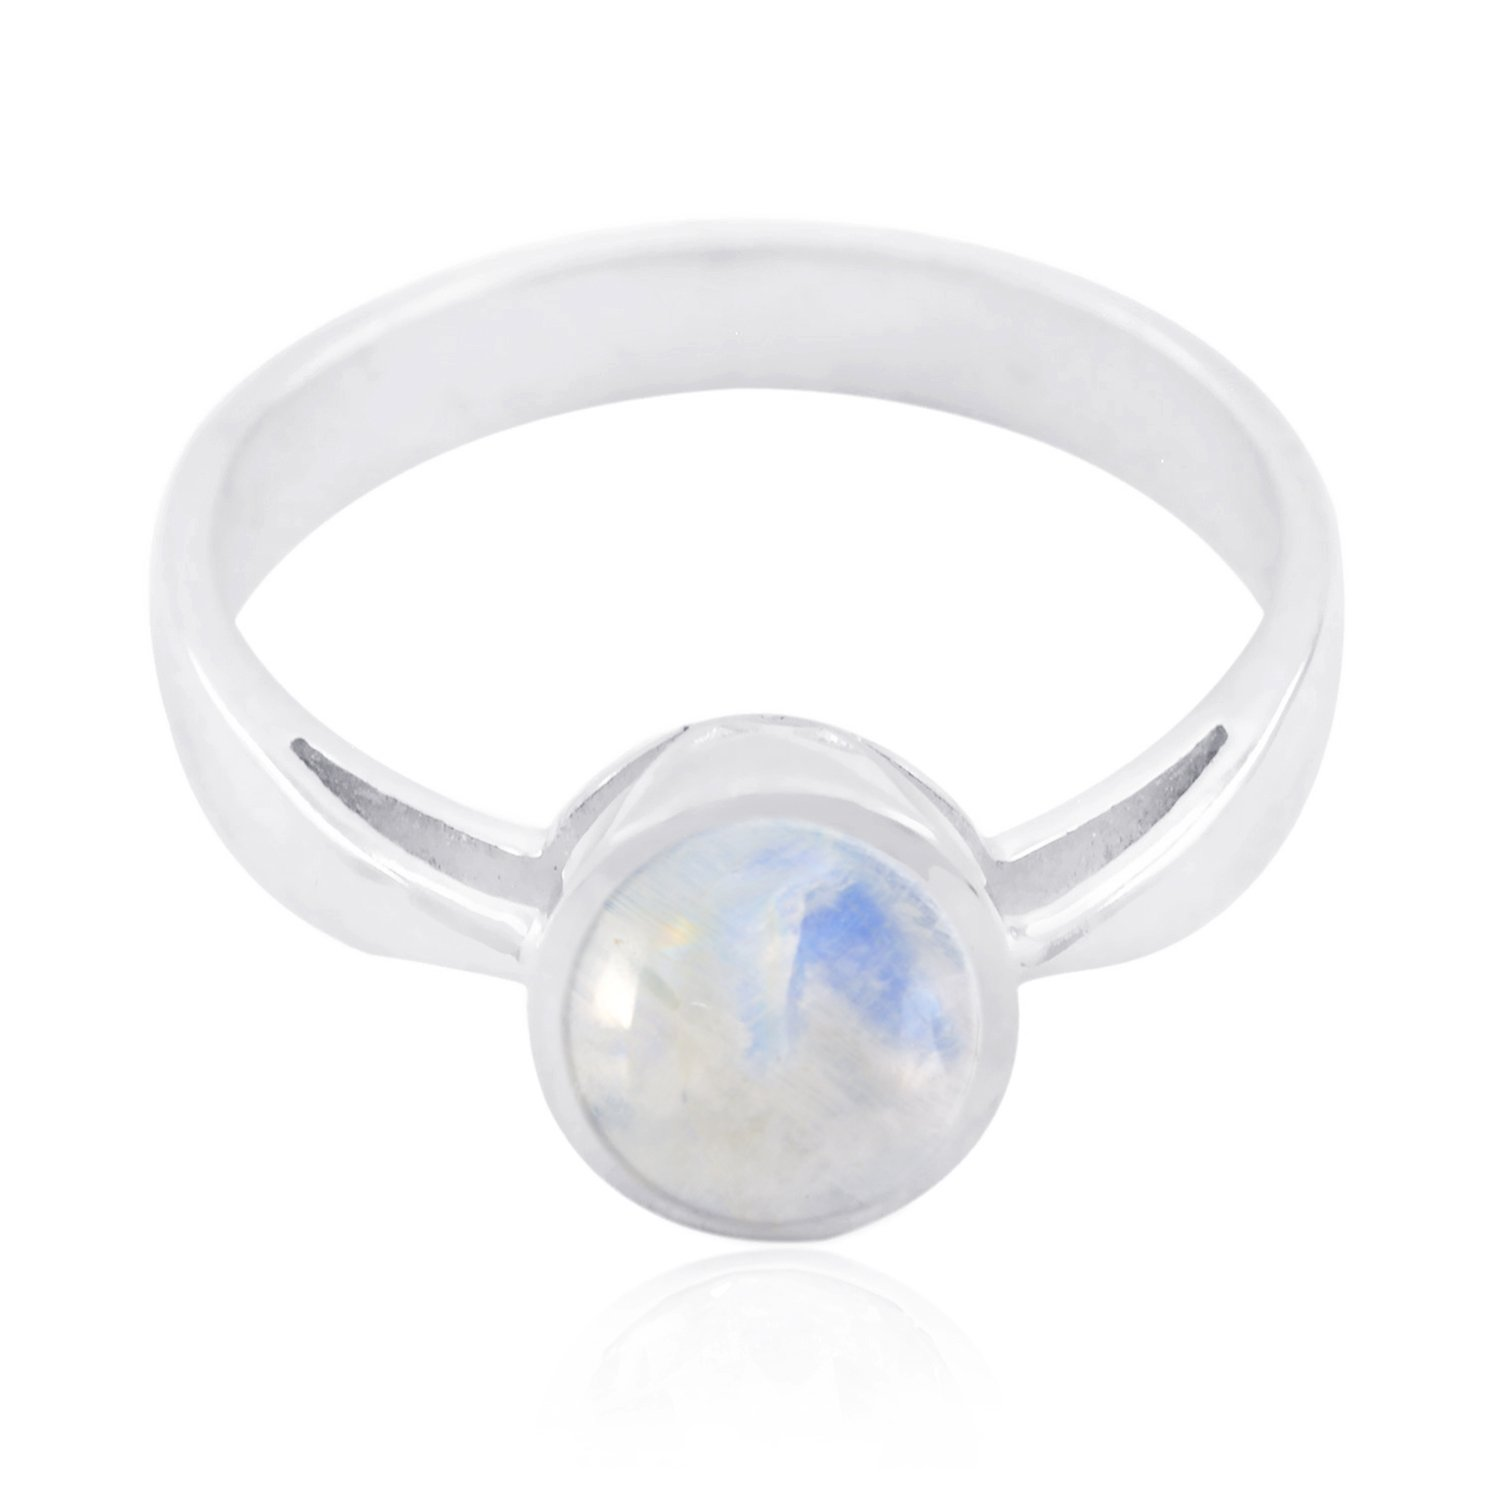 Exporter Jewellery Great Item Gift for Fathers Day Great Ring Good Gemstones Round cabochon Rainbow Moonstone Ring 925 Sterling Silver White Rainbow Moonstone Good Gemstones Ring